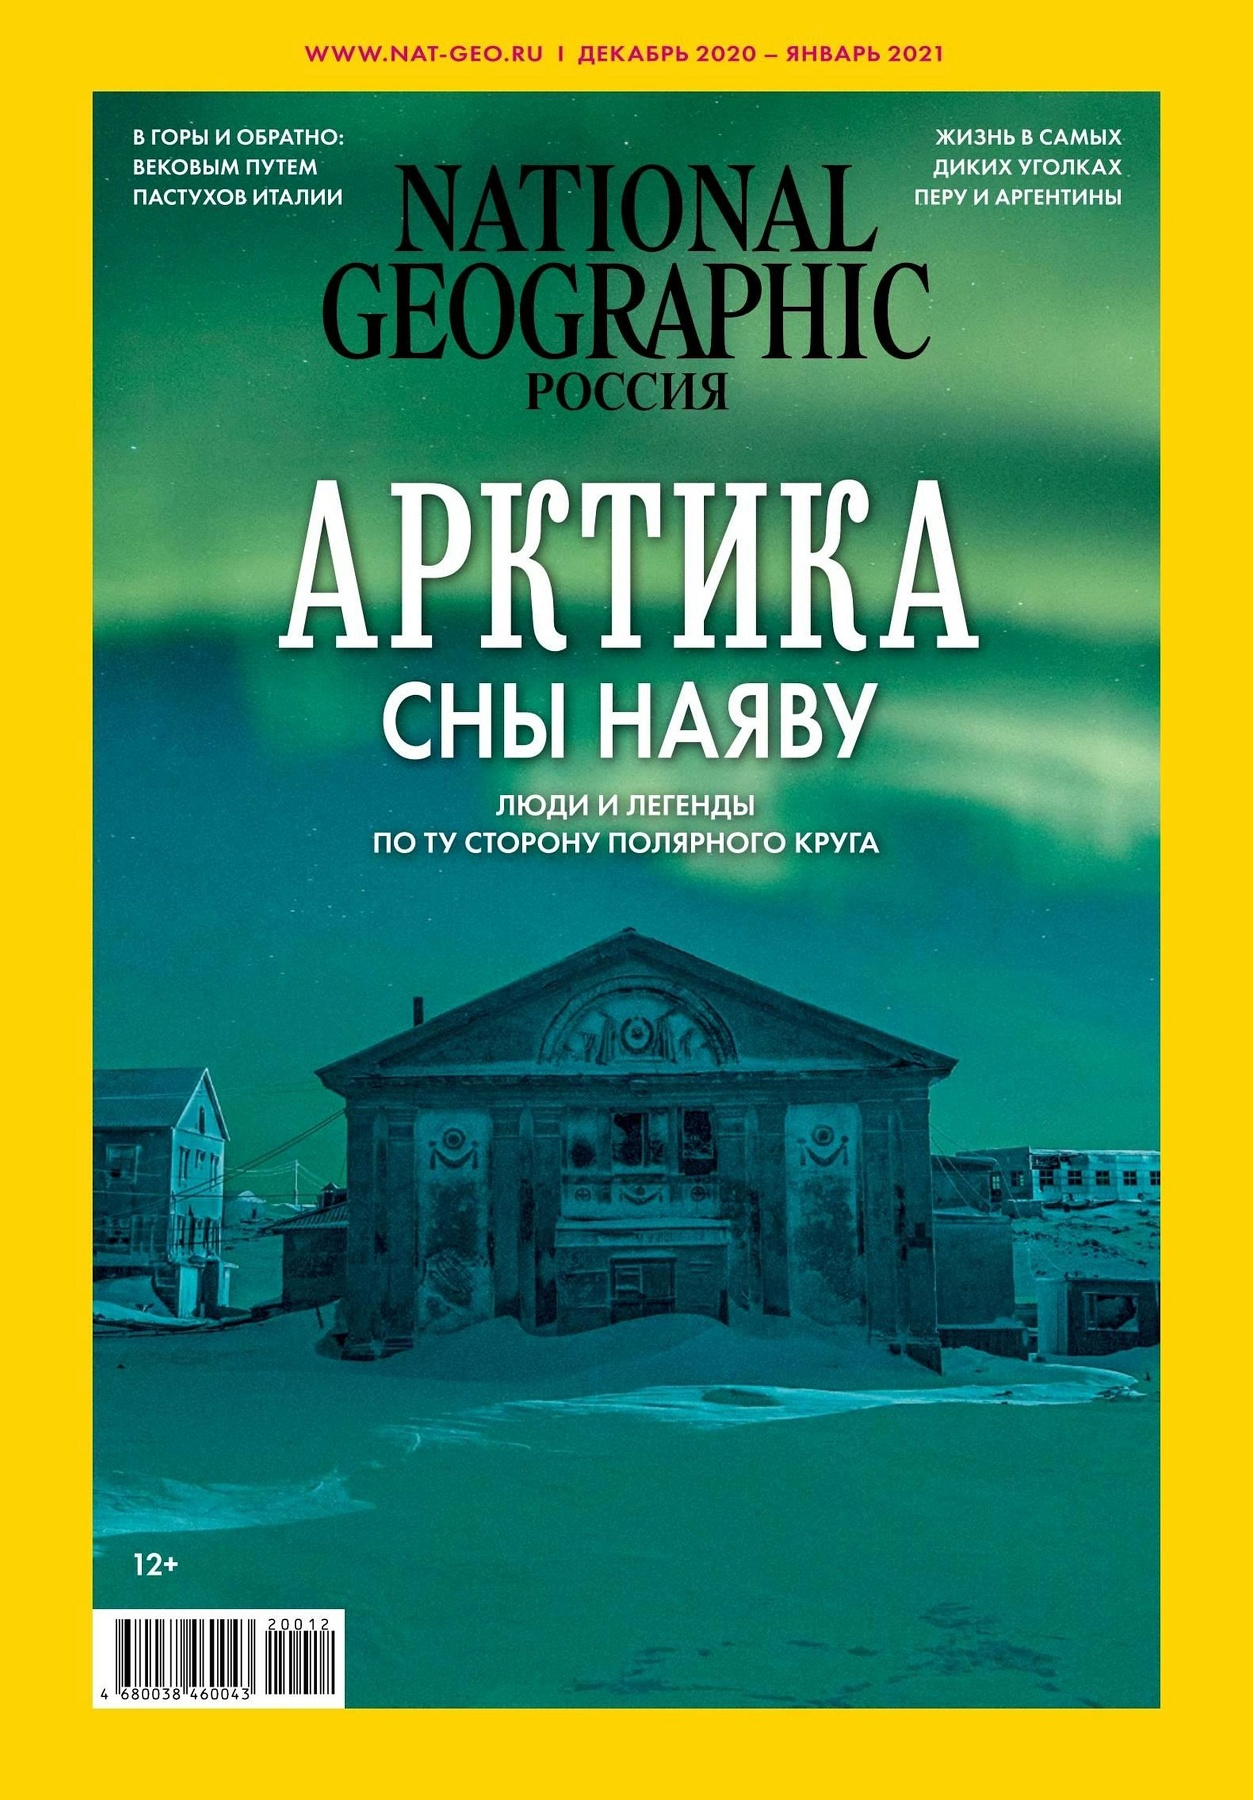 National Geographic №12, декабрь 2020